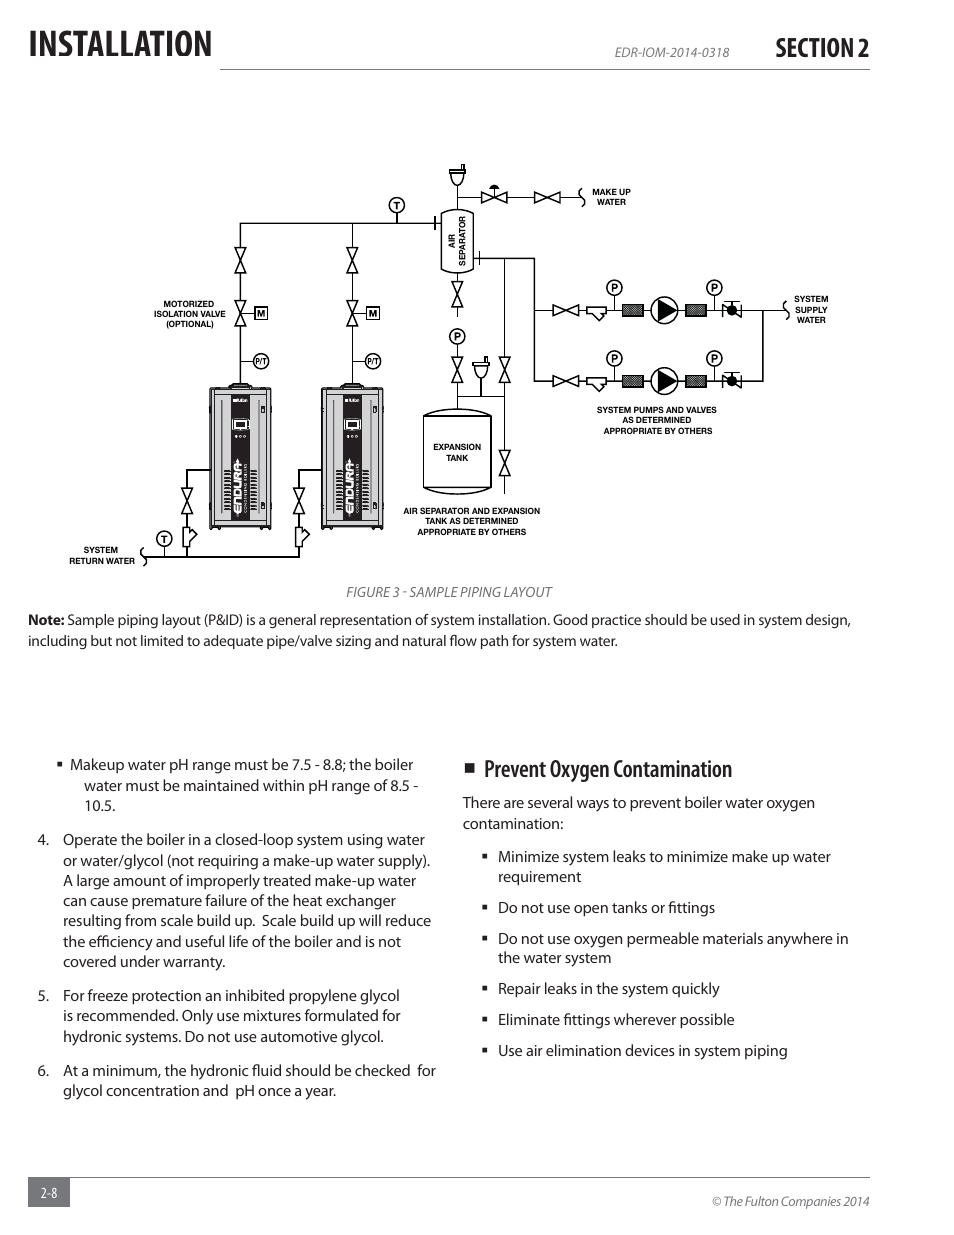 Installation Prevent Oxygen Contamination Fulton Endura Edr Piping Layout Requirements Condensing Hydronic Boiler User Manual Page 14 68